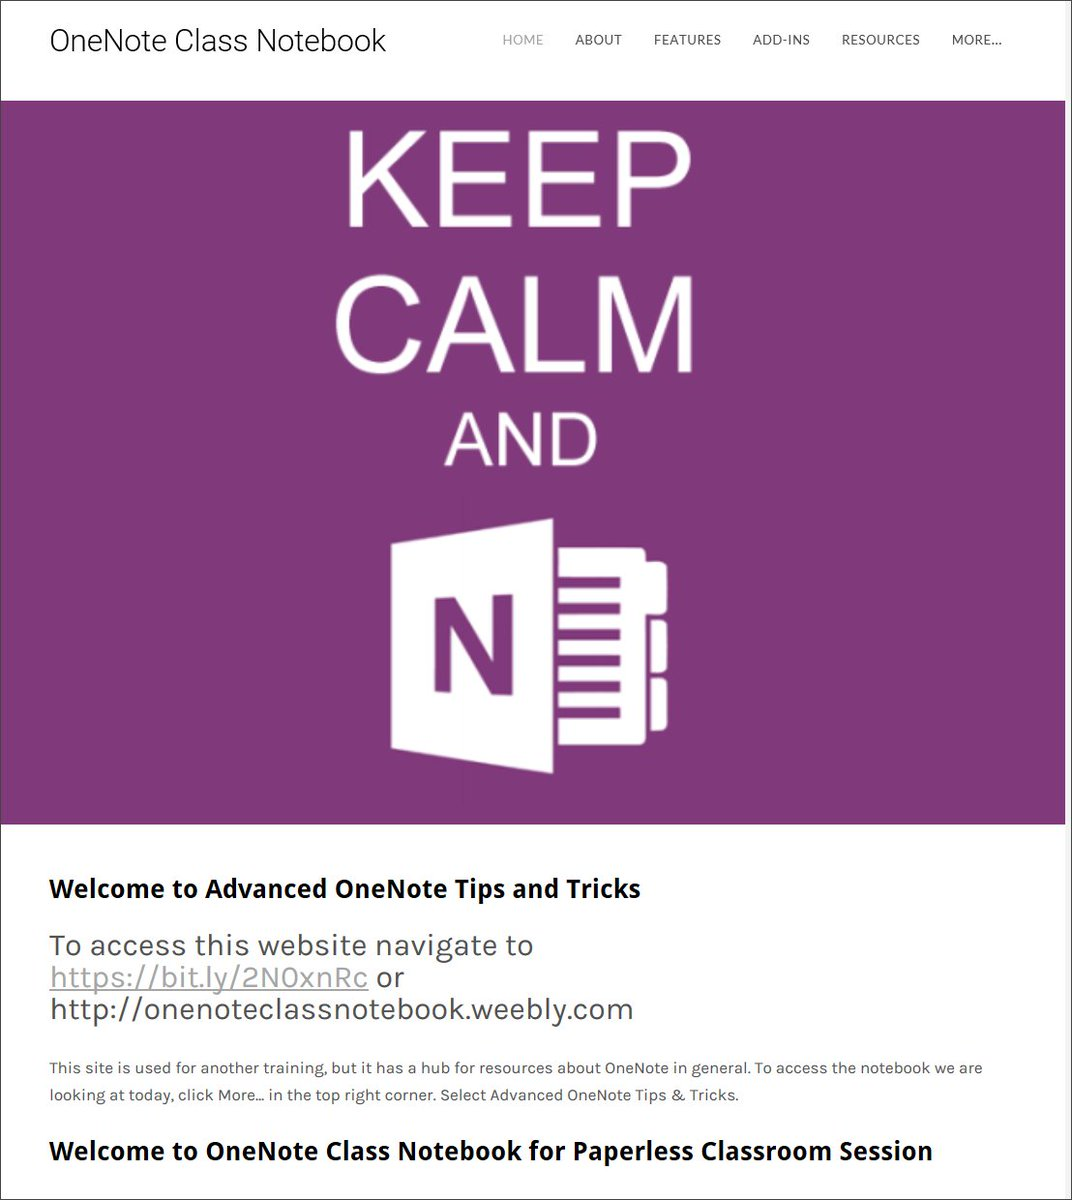 OneNote Central on Twitter: